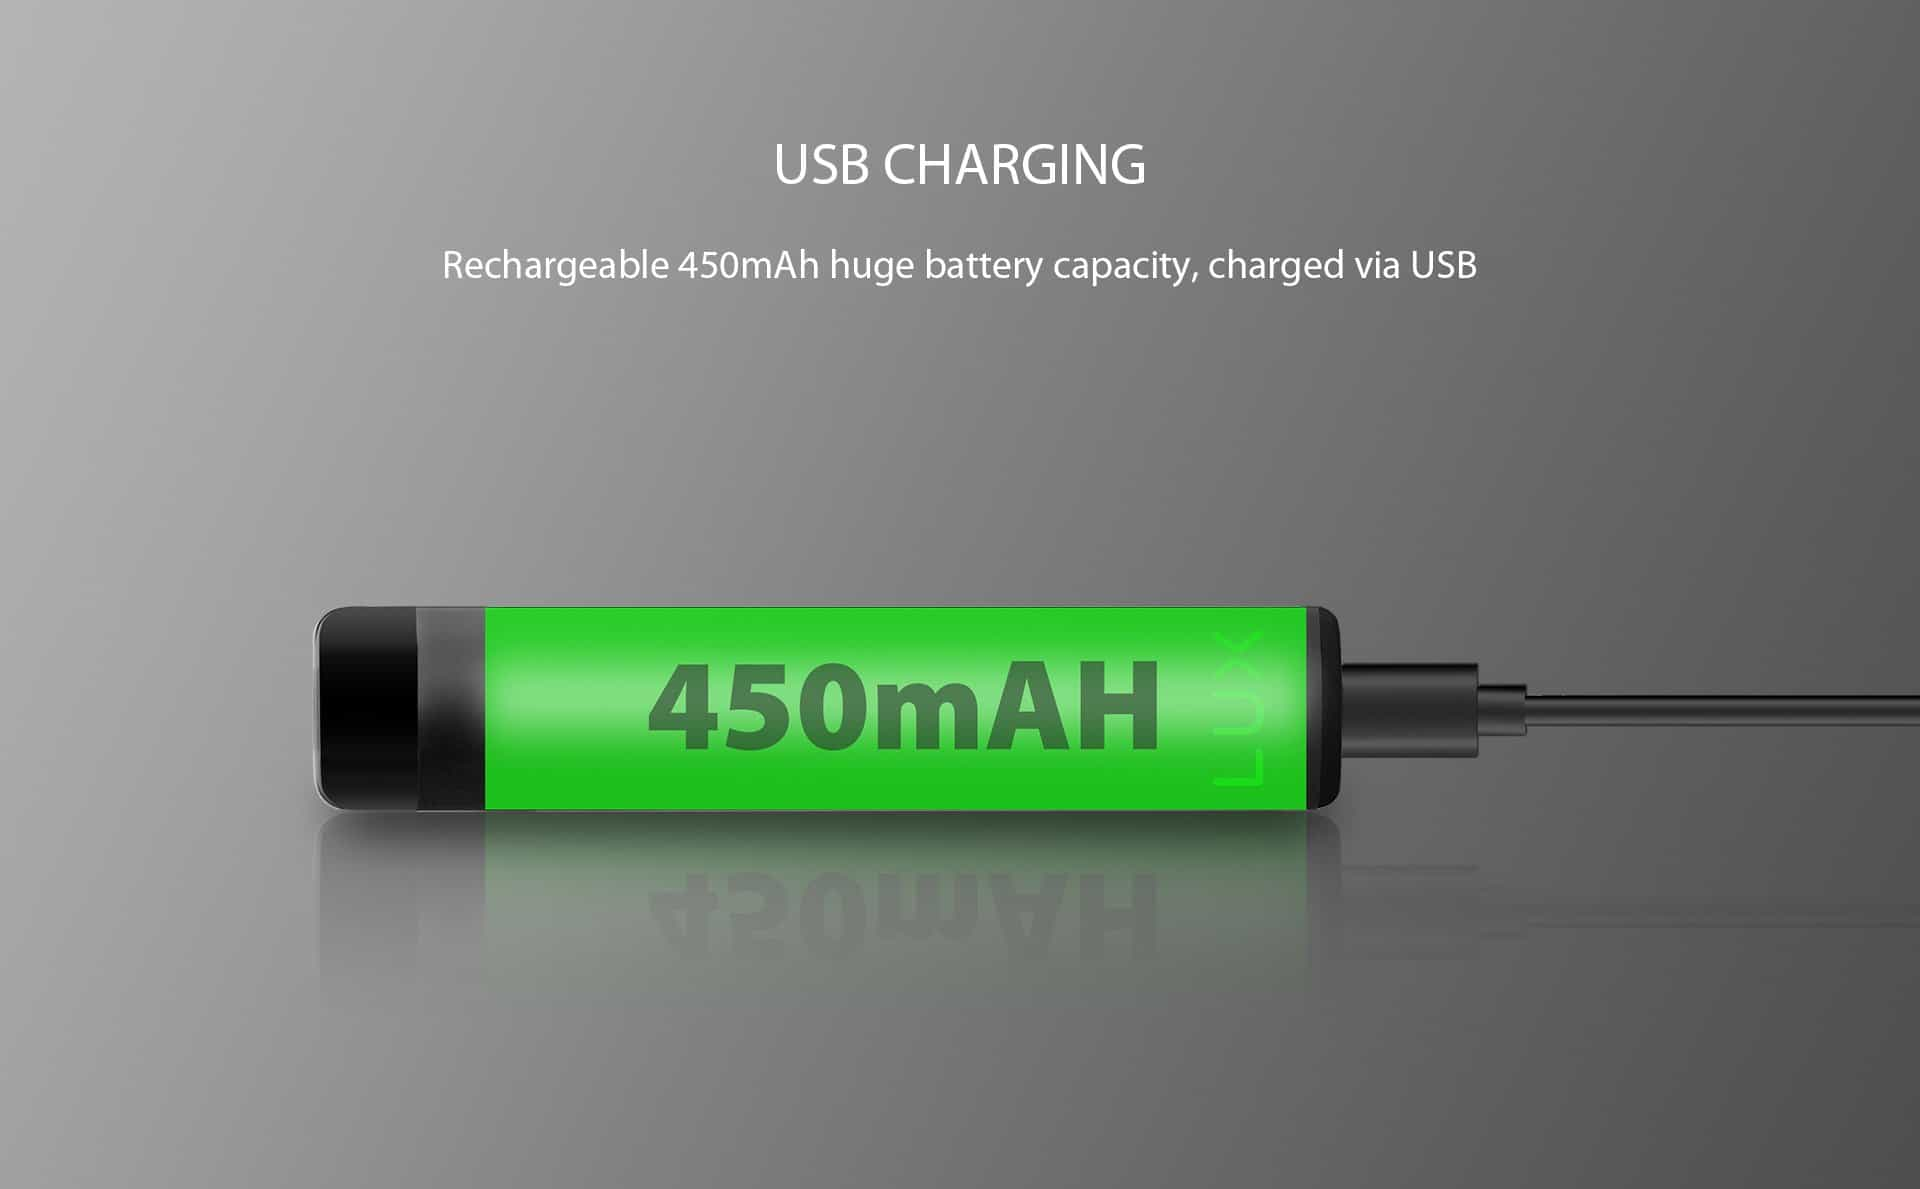 Wellon LUX Pod system designed with fast USB Charging, rechargeable 450mAh huge battery capacity, charged via micro USB port.